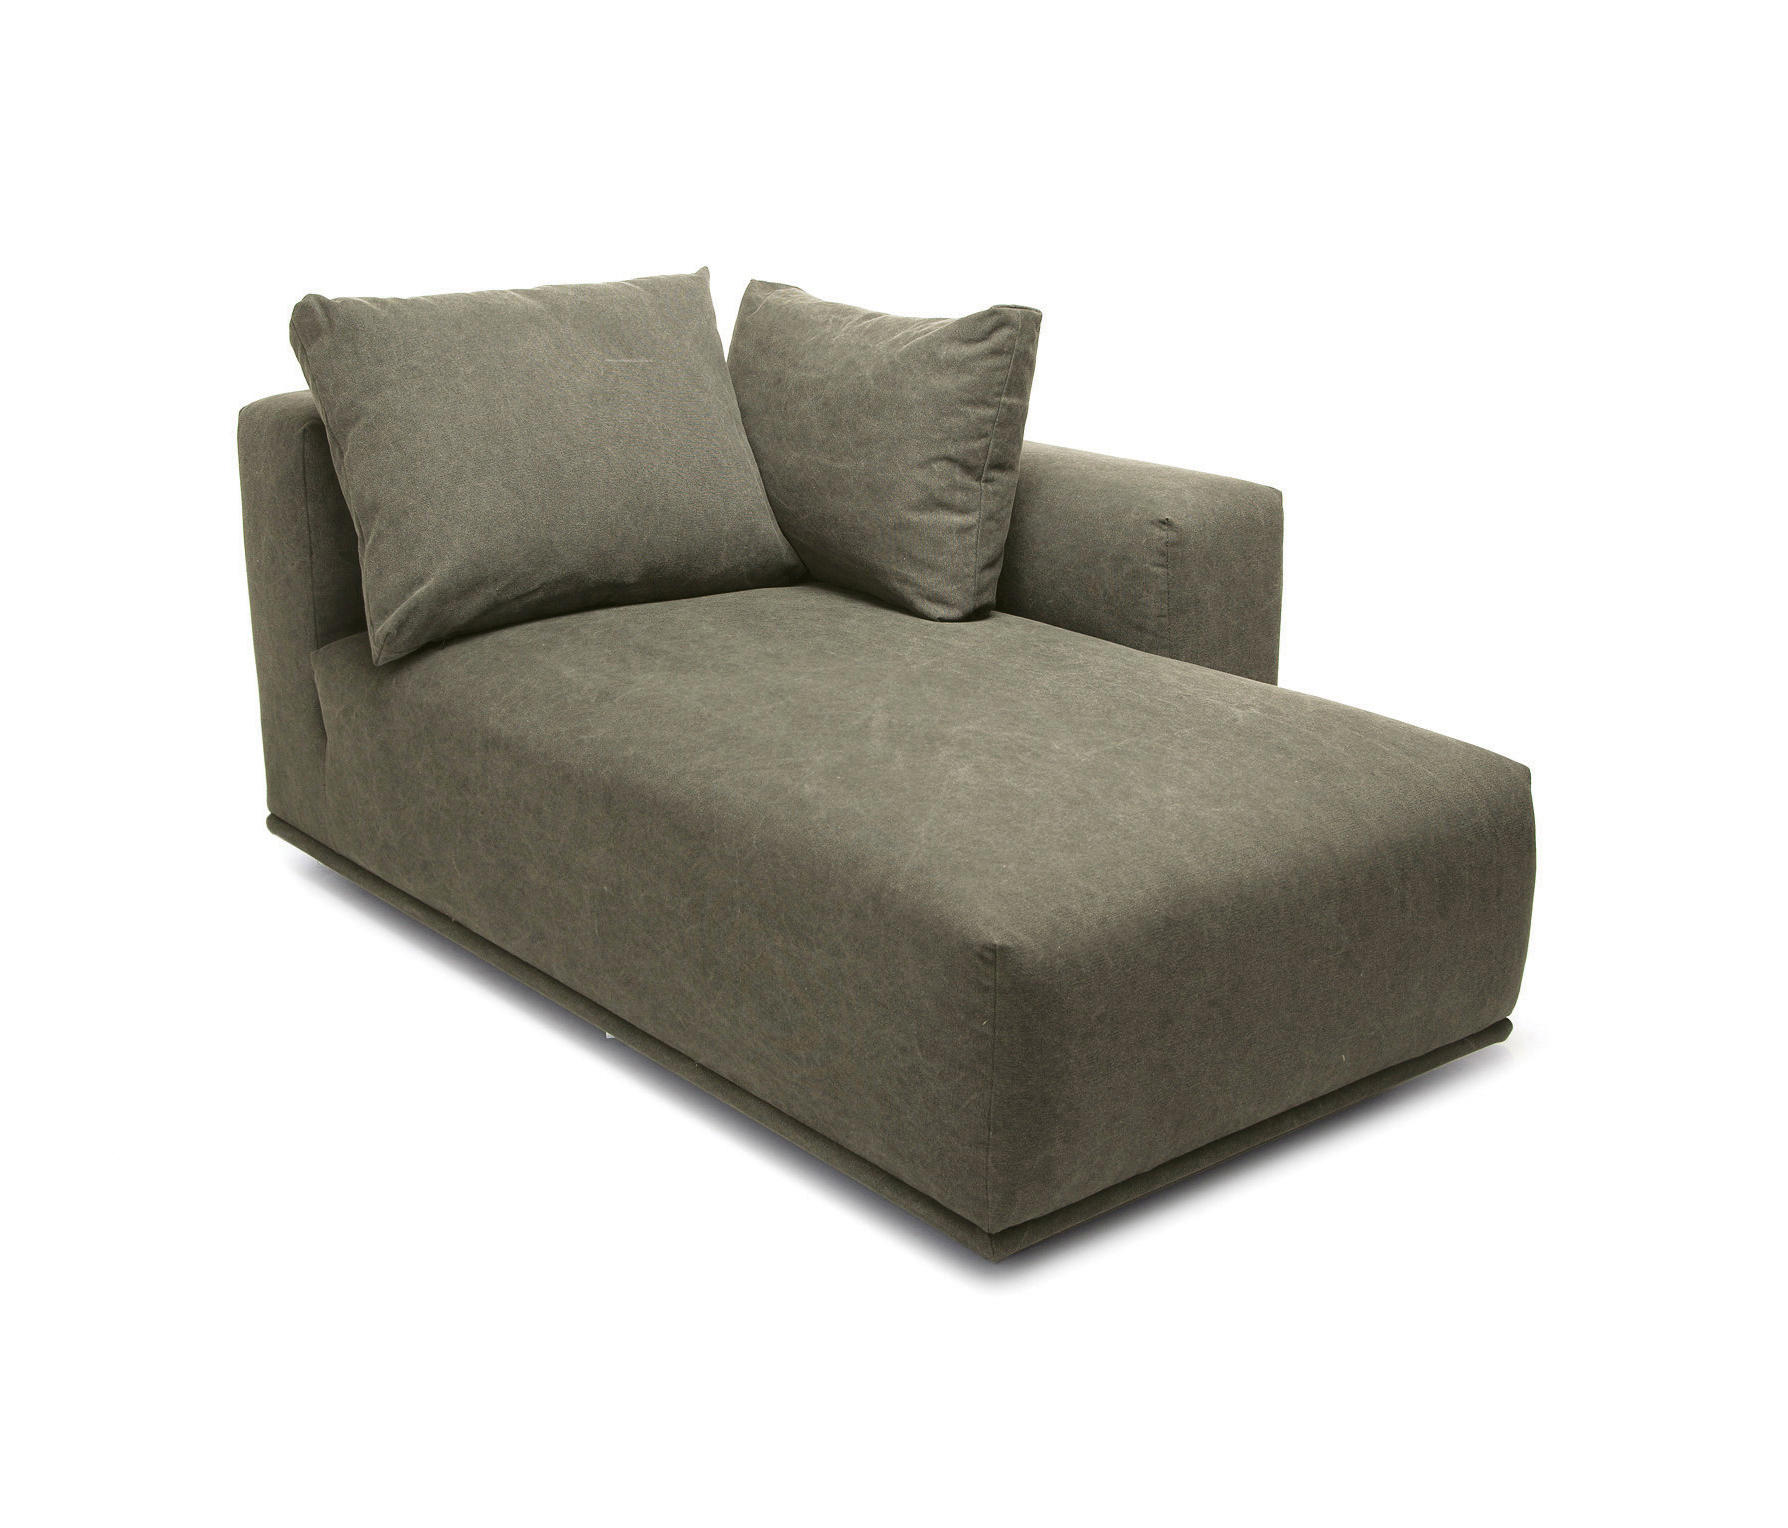 Madonna sofa chaise longue left canvas washed green 156 for Sofa chaise longue